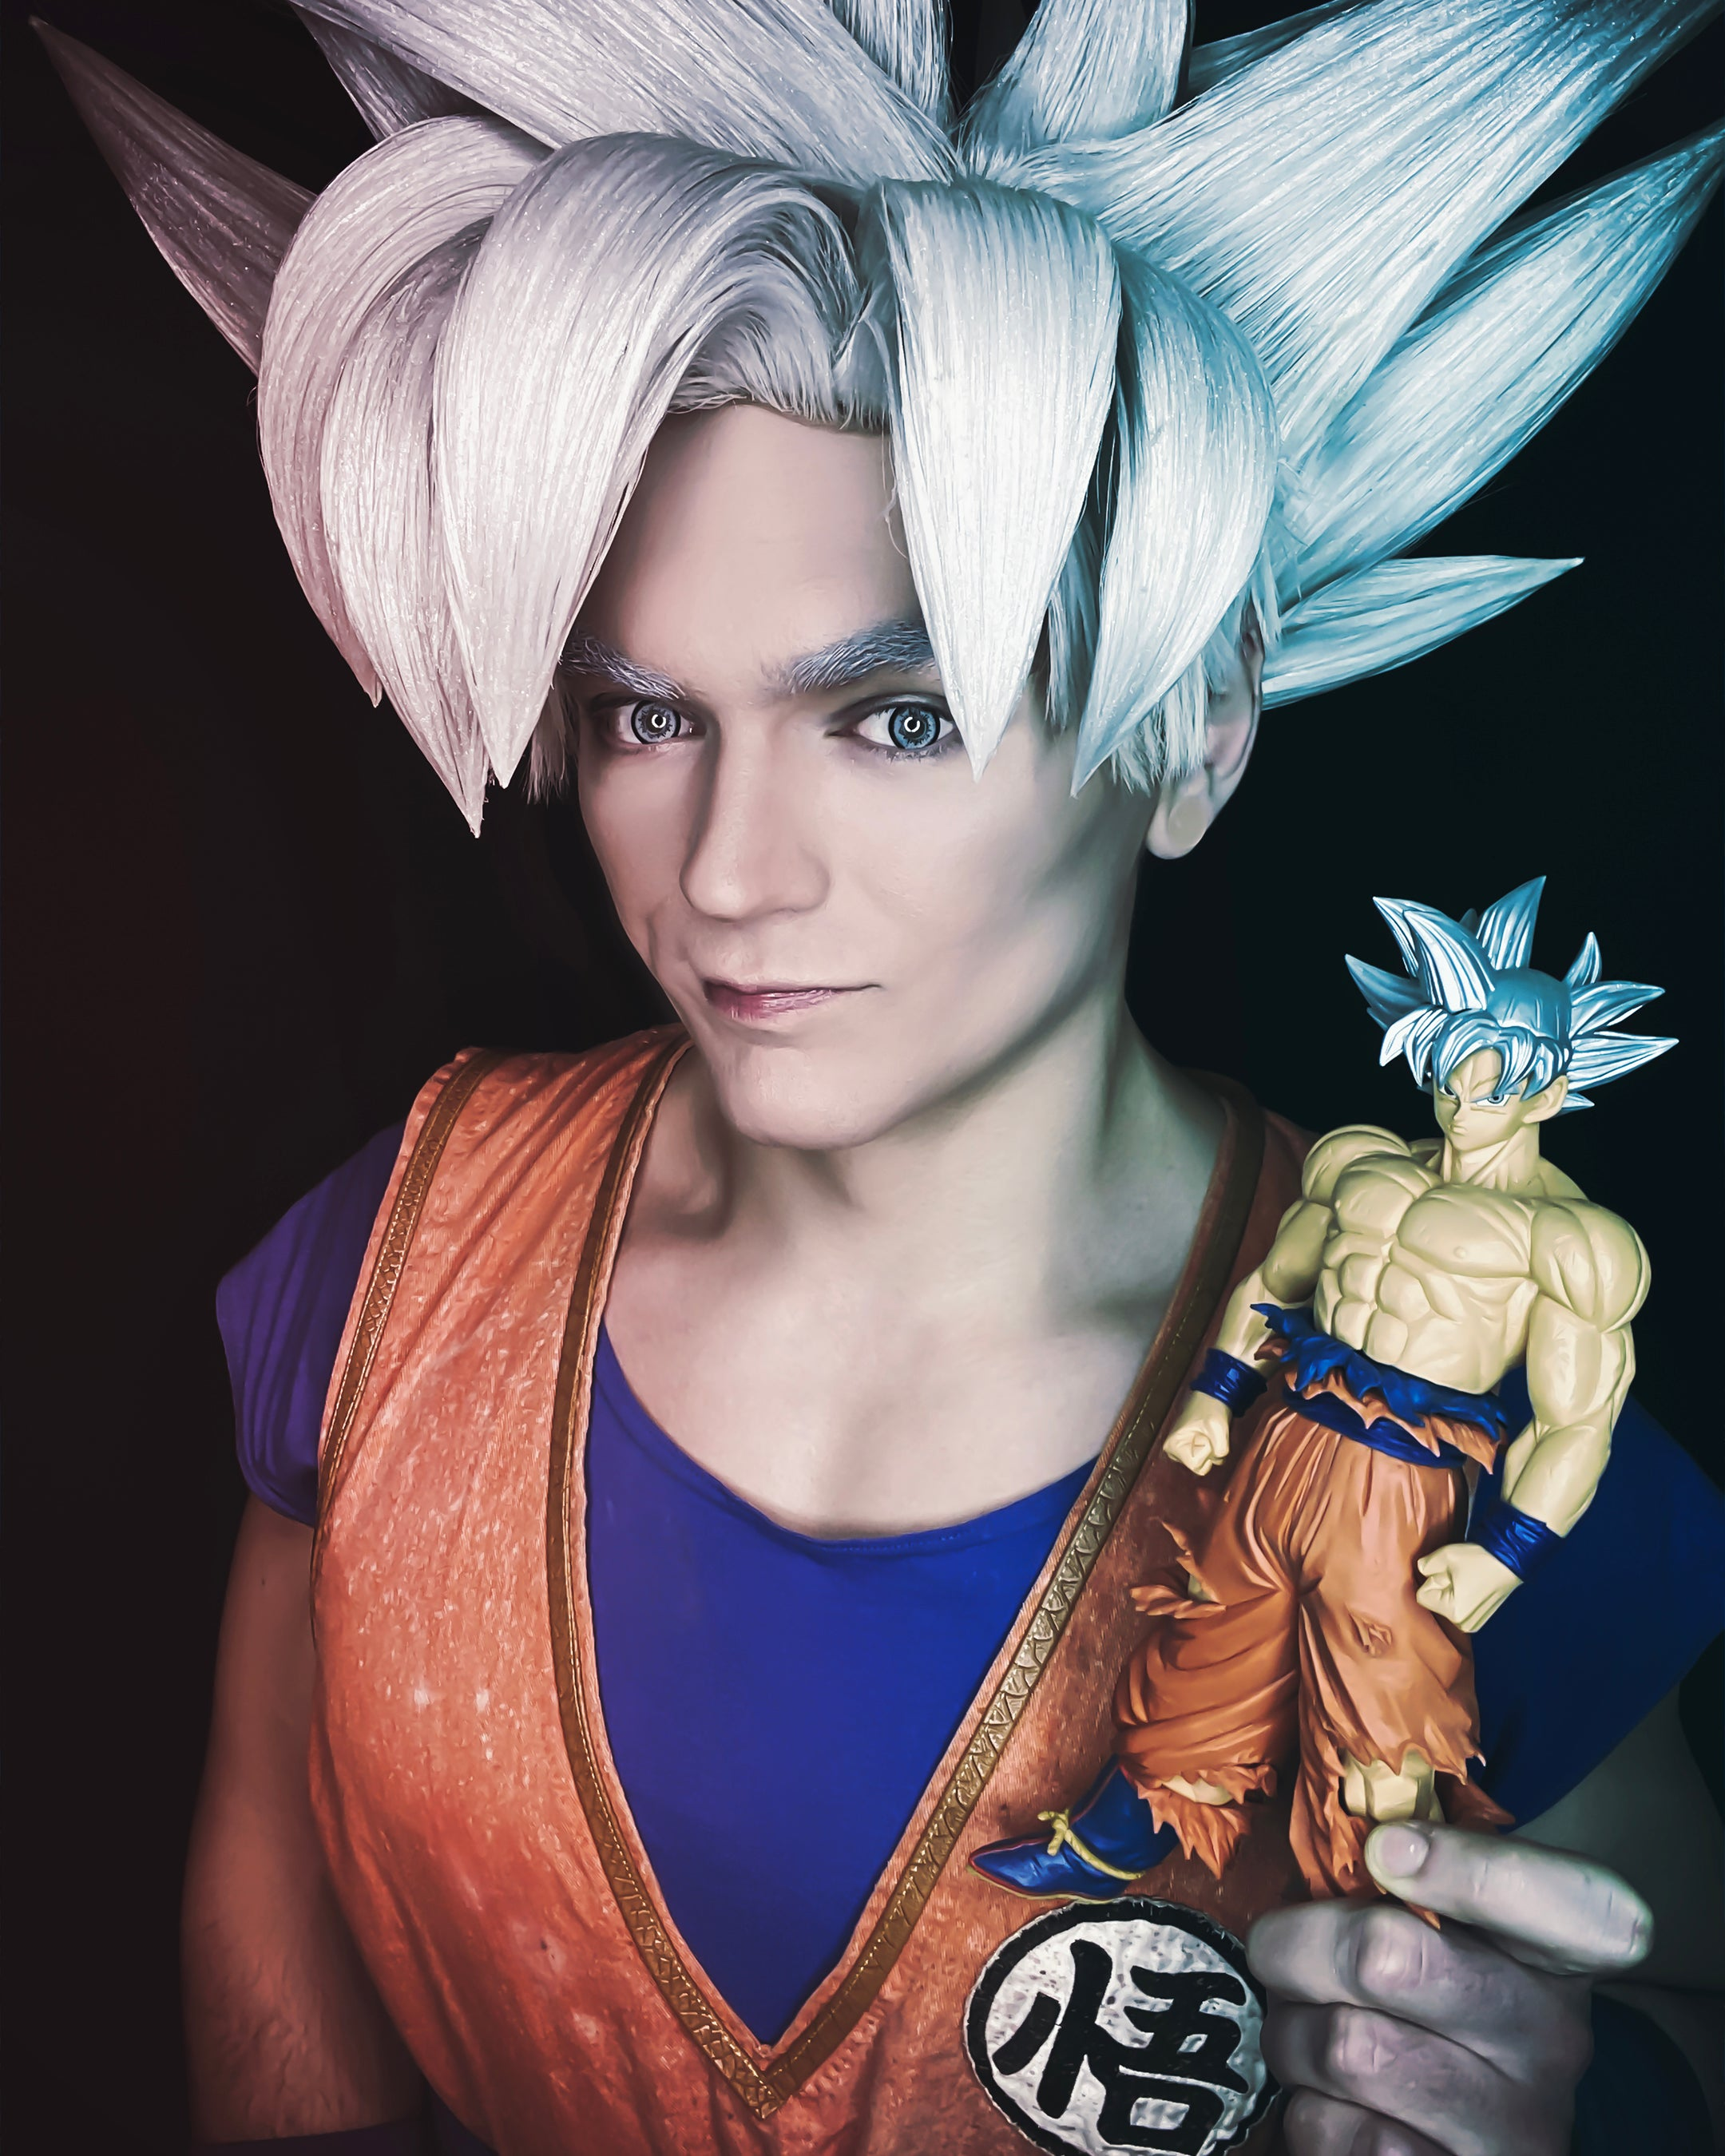 How This Cosplayer Used His Ultra Instinct Goku Cosplay As Motivation To Get Better